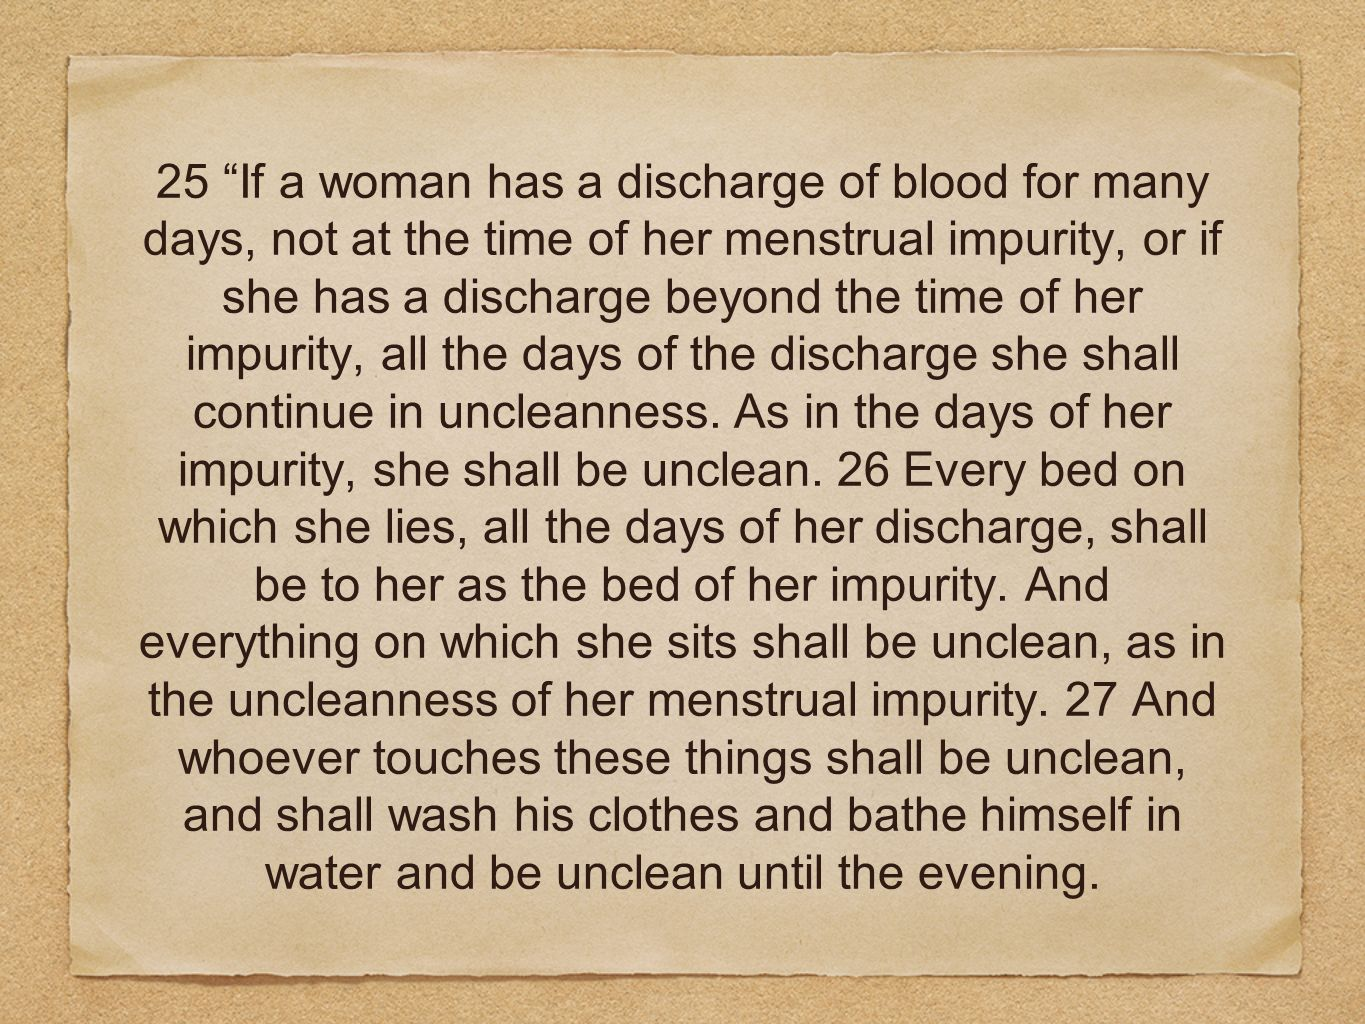 25 If a woman has a discharge of blood for many days, not at the time of her menstrual impurity, or if she has a discharge beyond the time of her impu